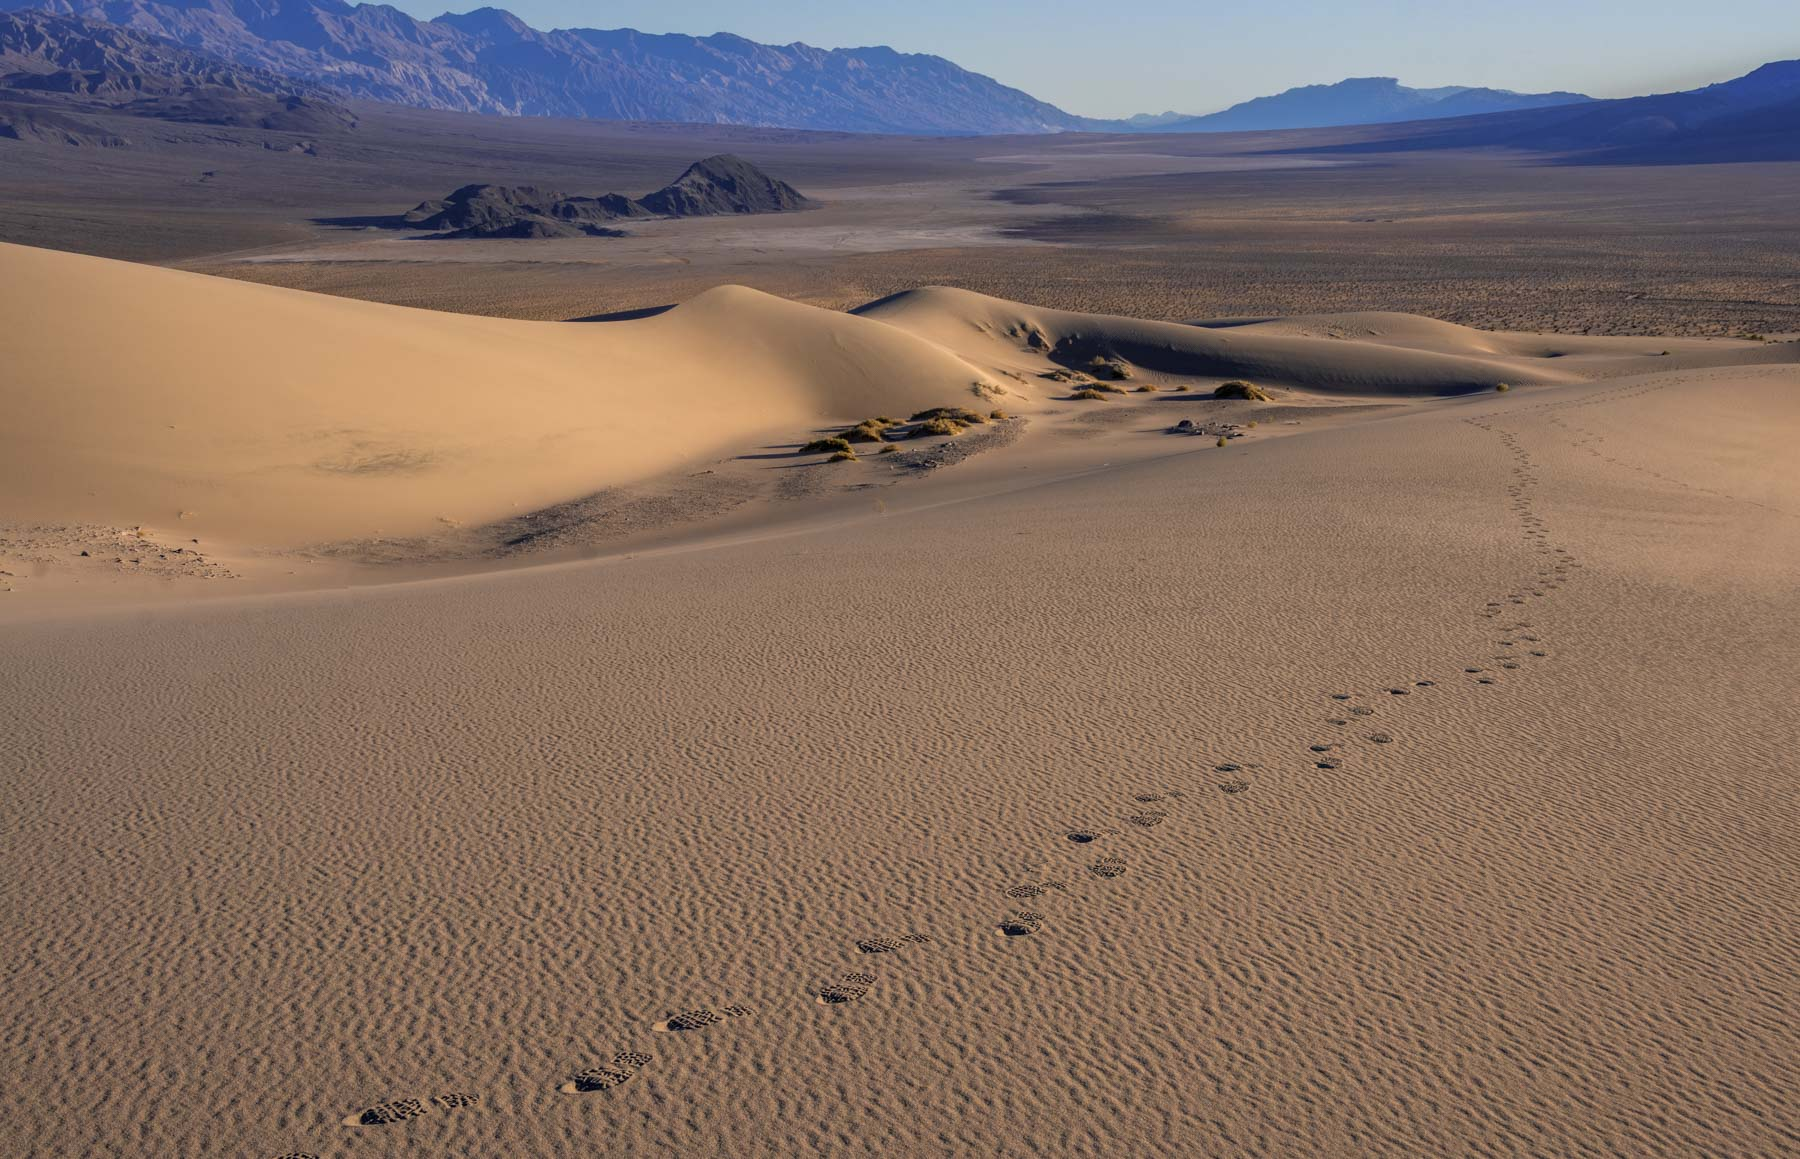 Footprints on the Panamint Dunes in Death Valley